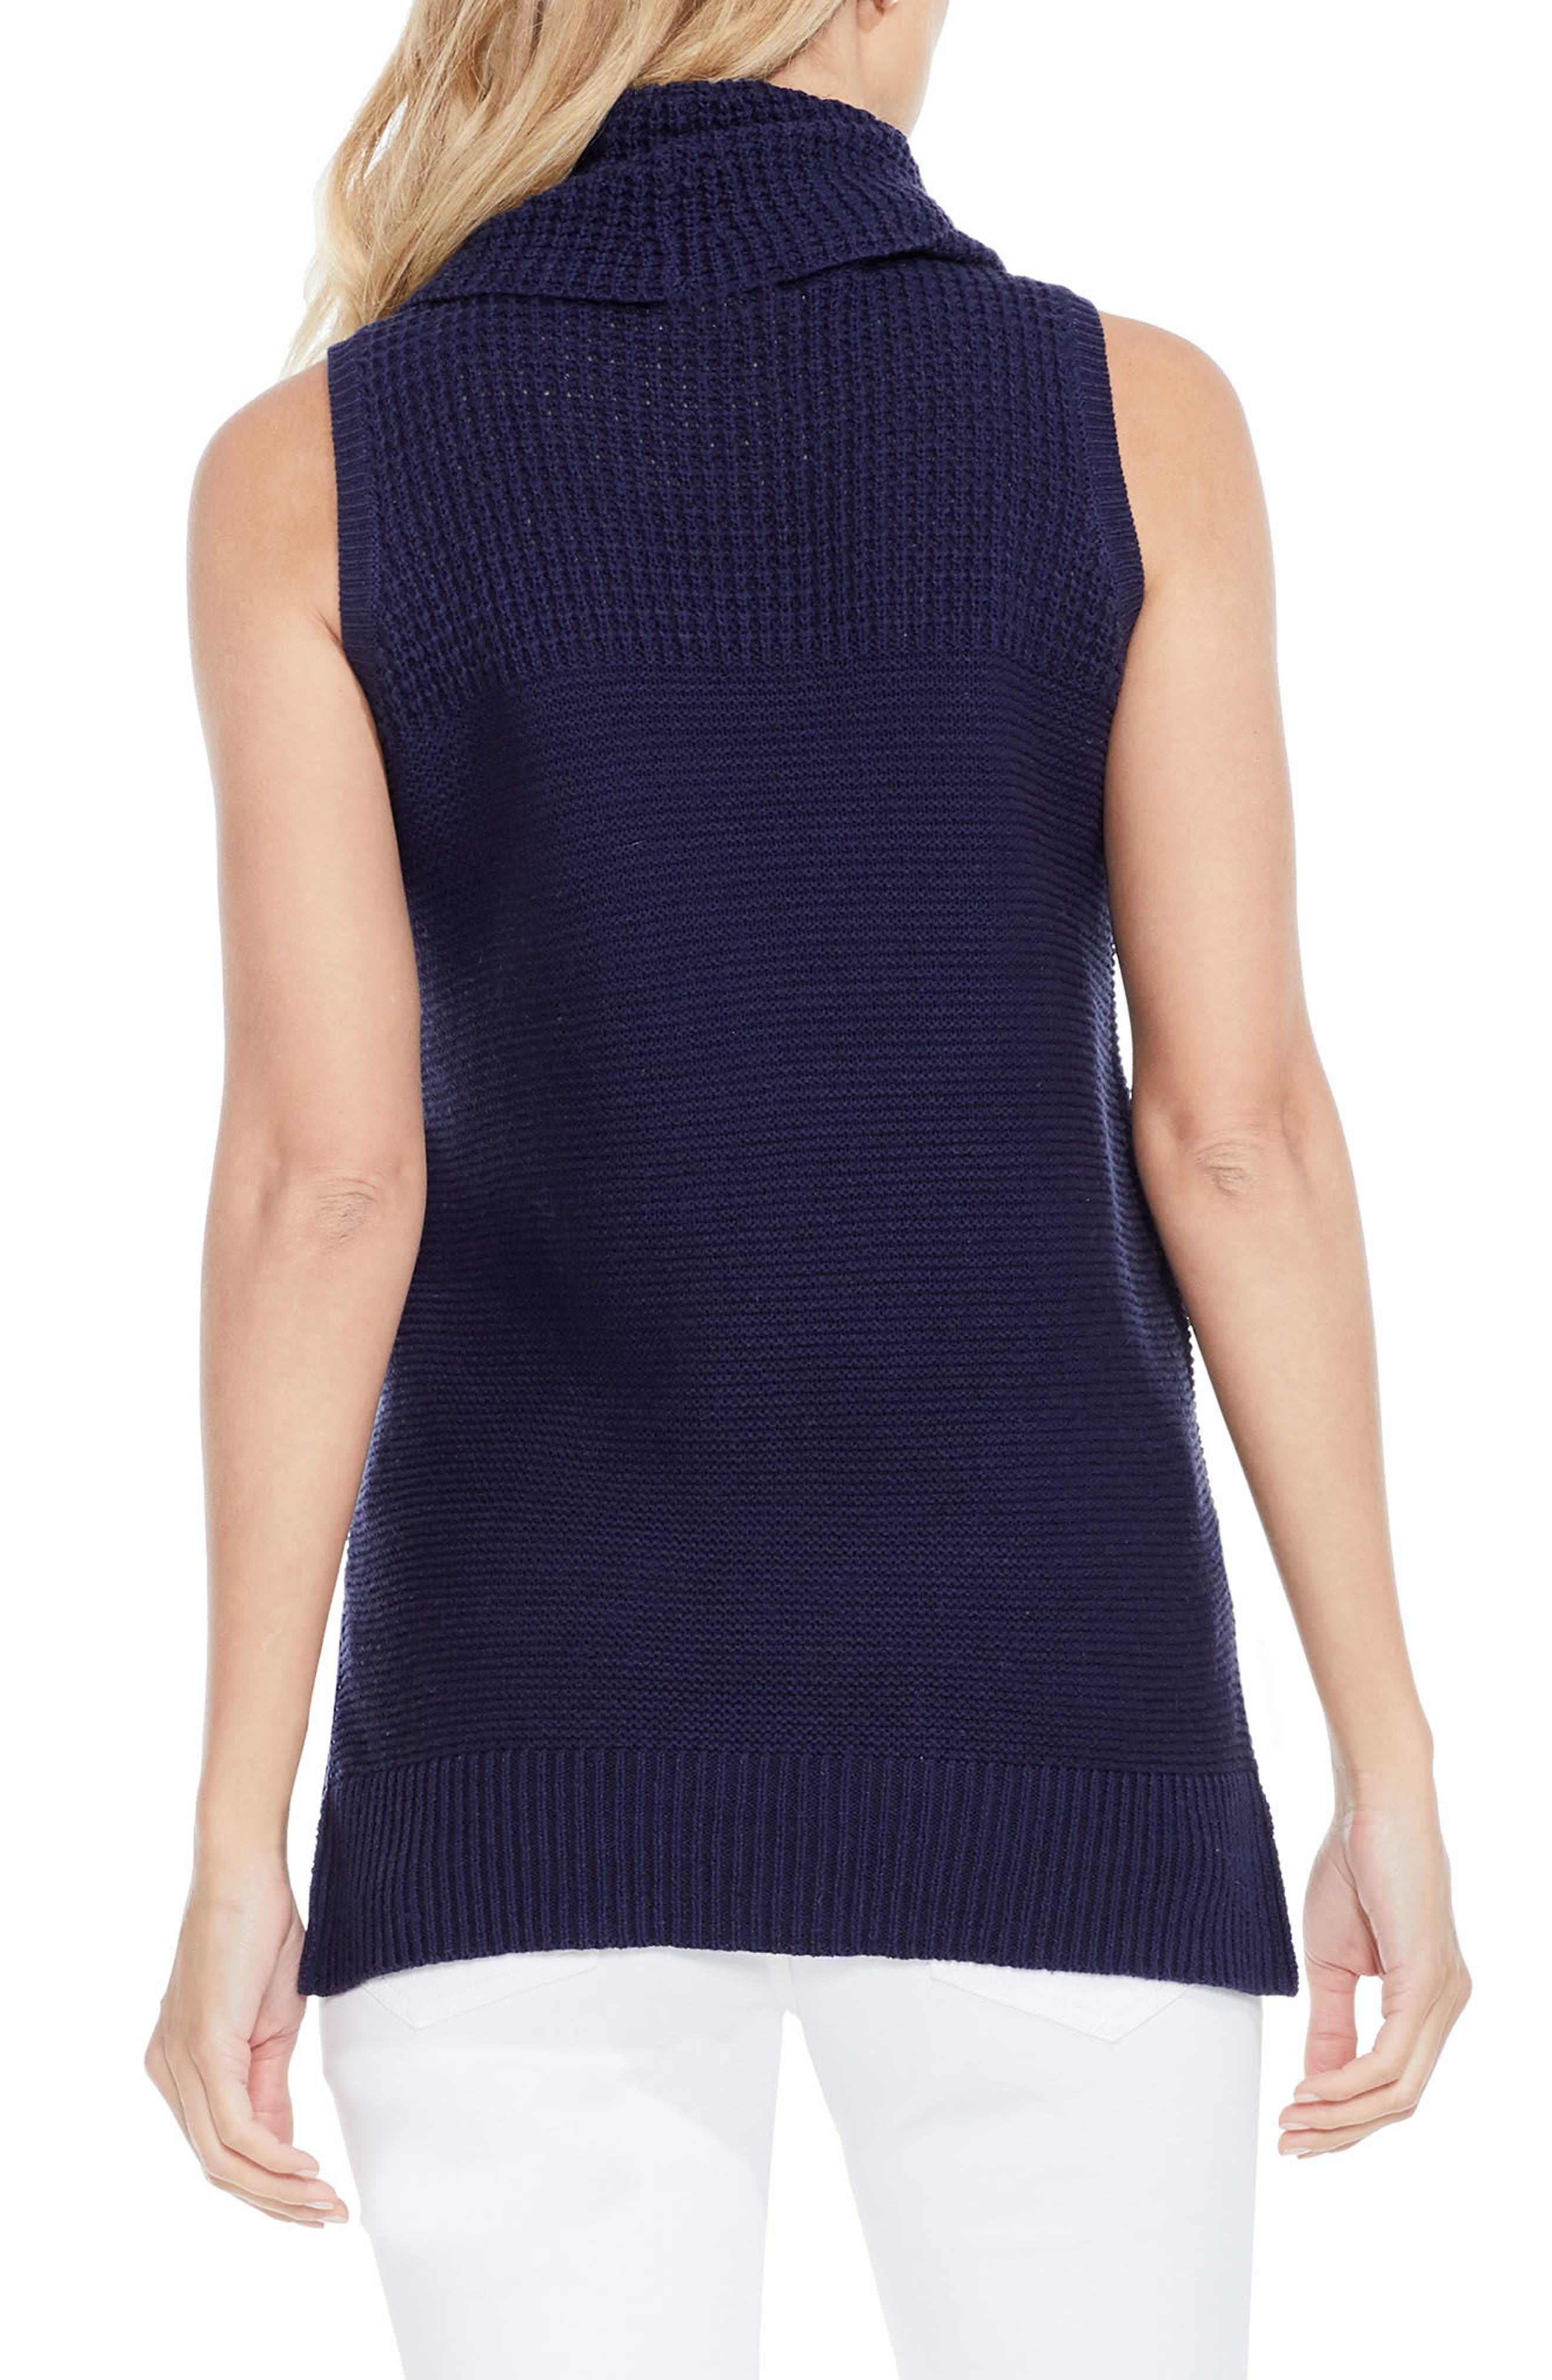 Alternate Image 2  - Two by Vince Camuto Sleeveless Cowl Neck Sweater